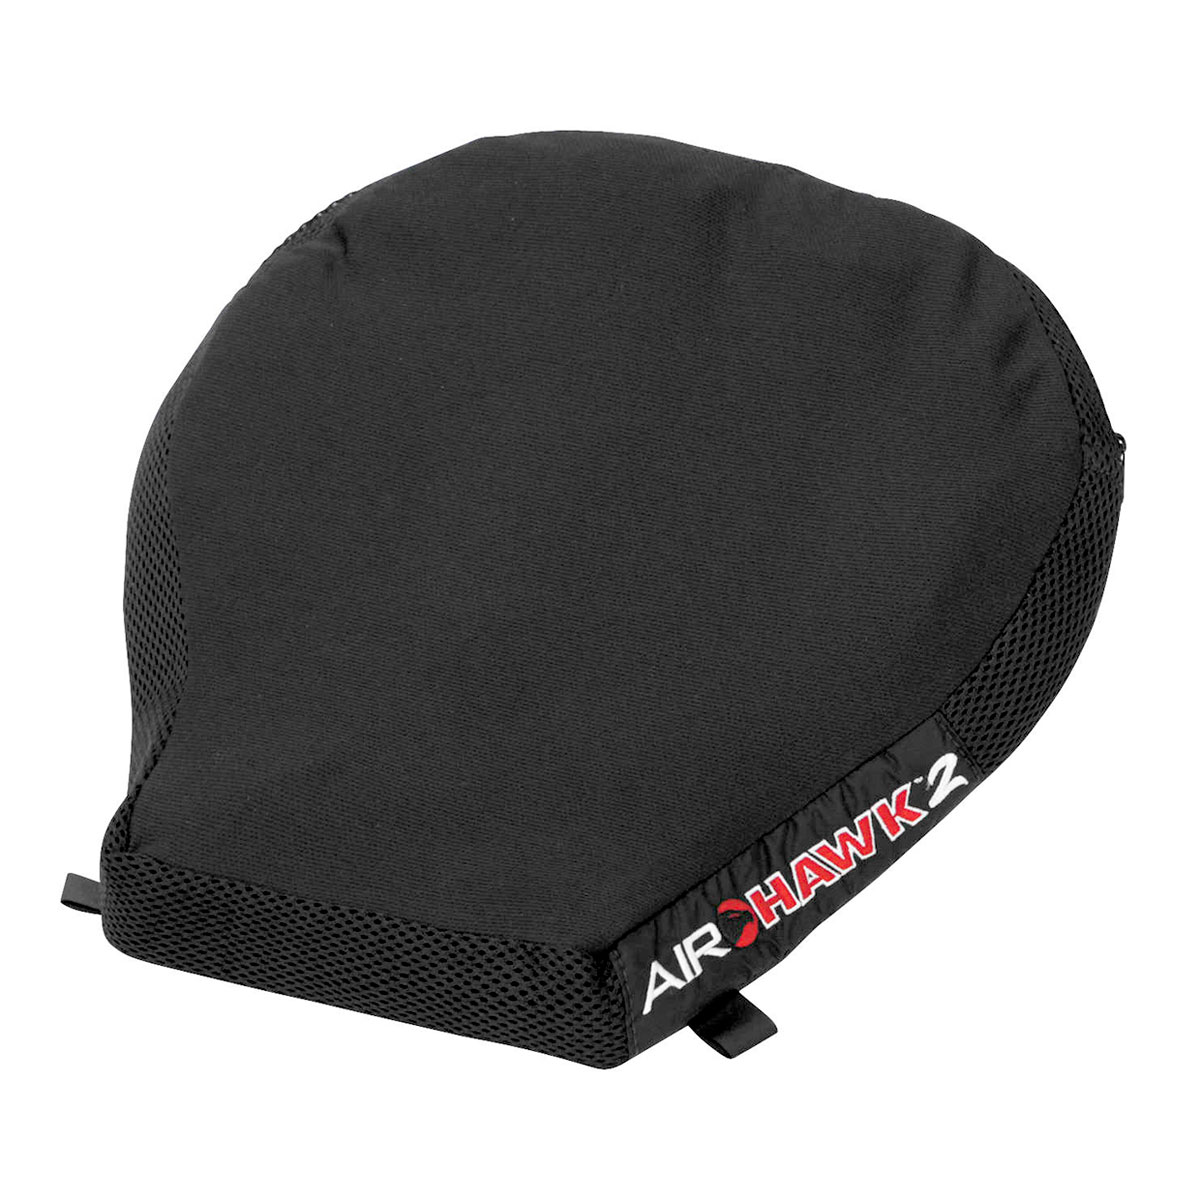 AirHawk AH2 Medium Cruiser Cushion